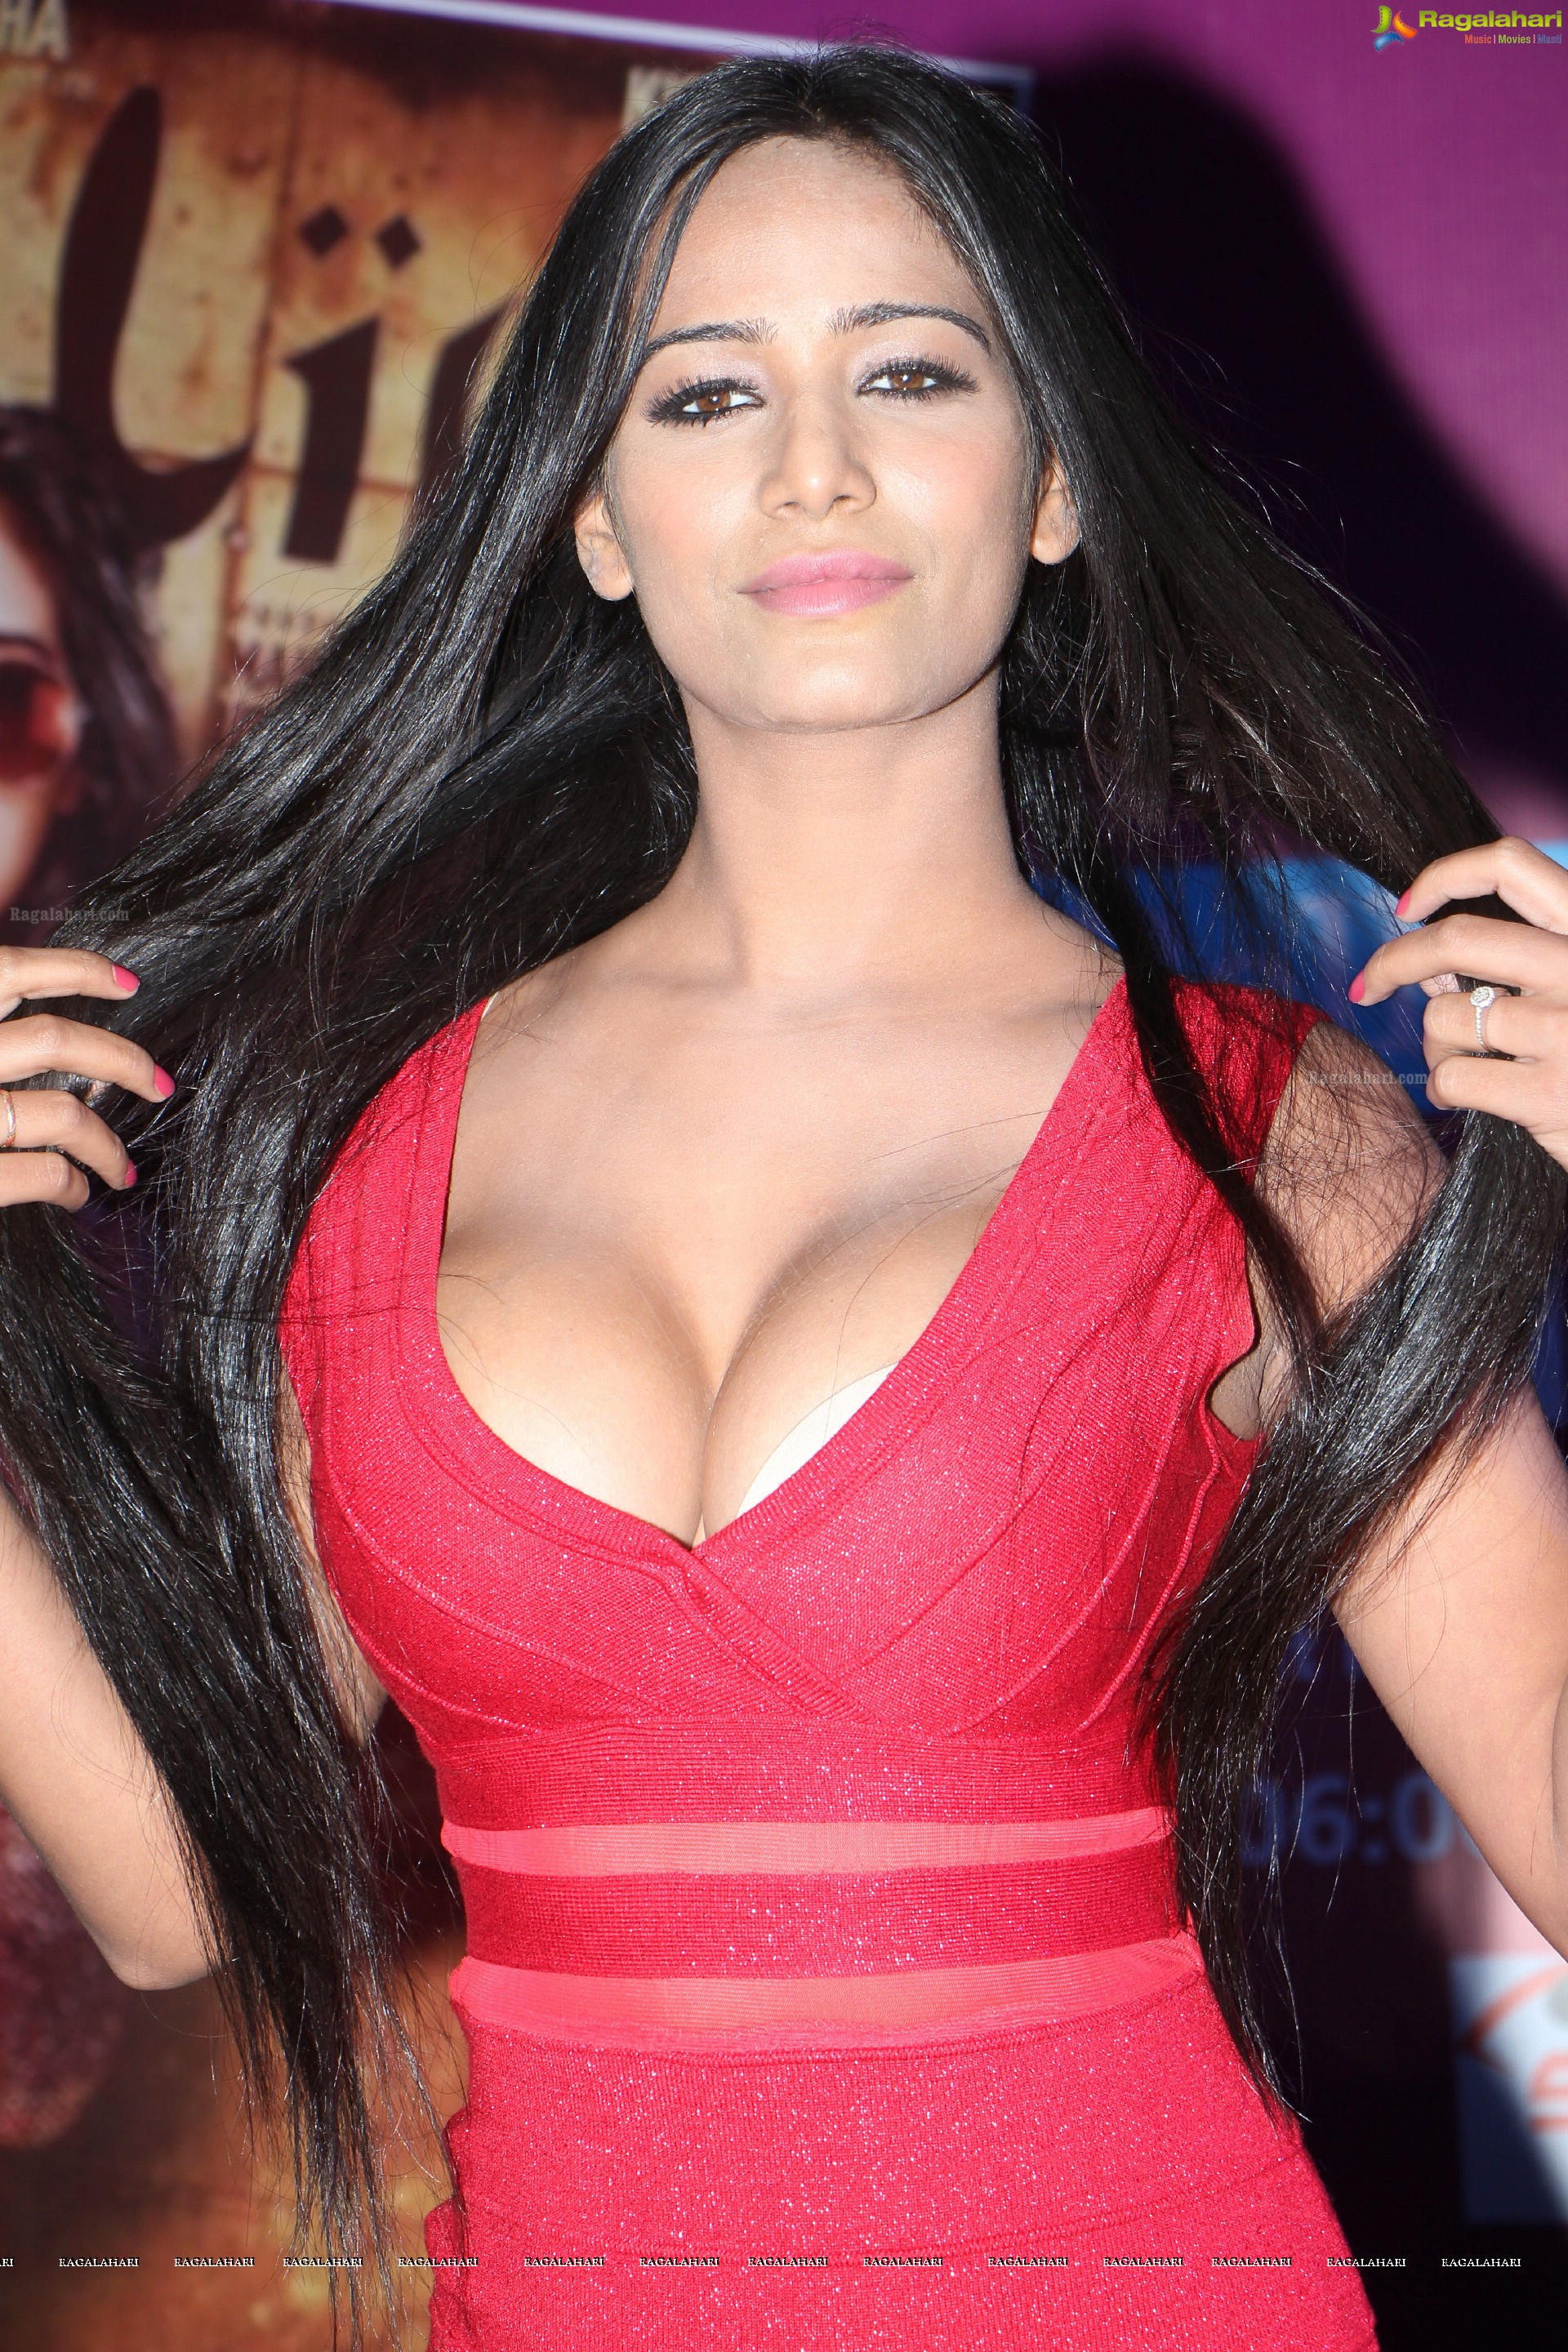 Big Boobs  Daily Bollywood And South Indian Actresses -2857